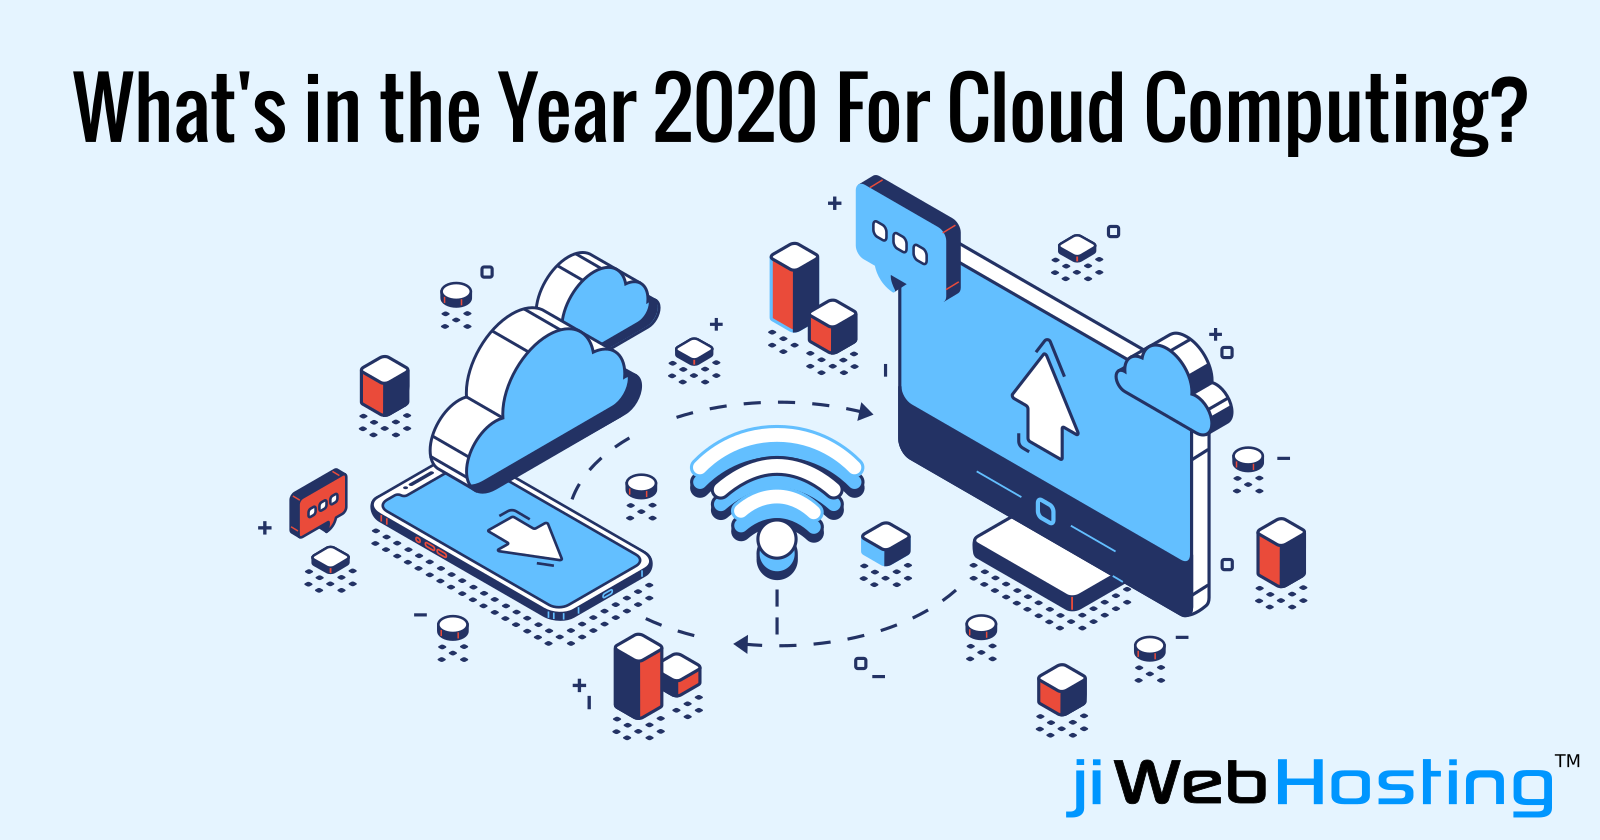 What's in the Year 2020 For Cloud Computing?